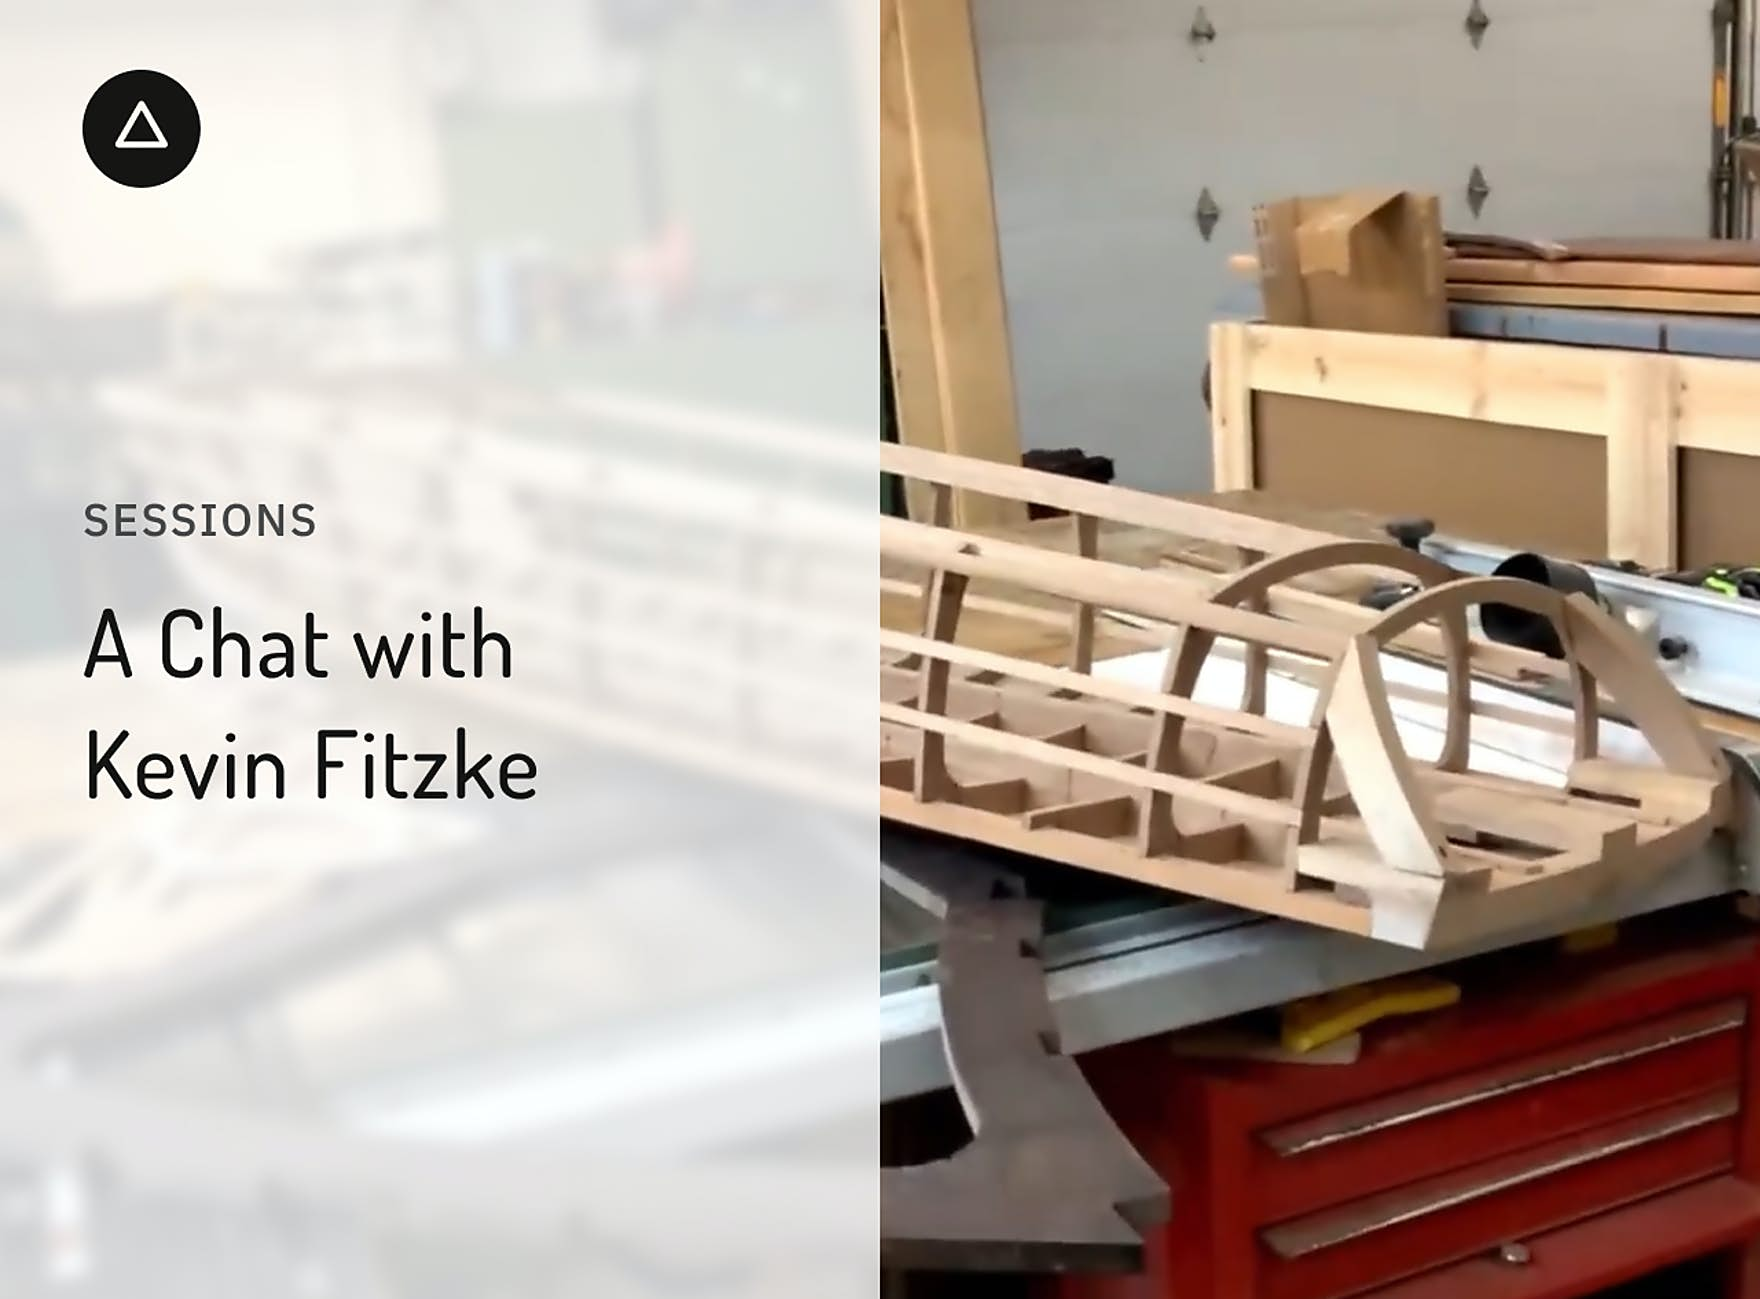 The frame of a wooden boat on a workbench